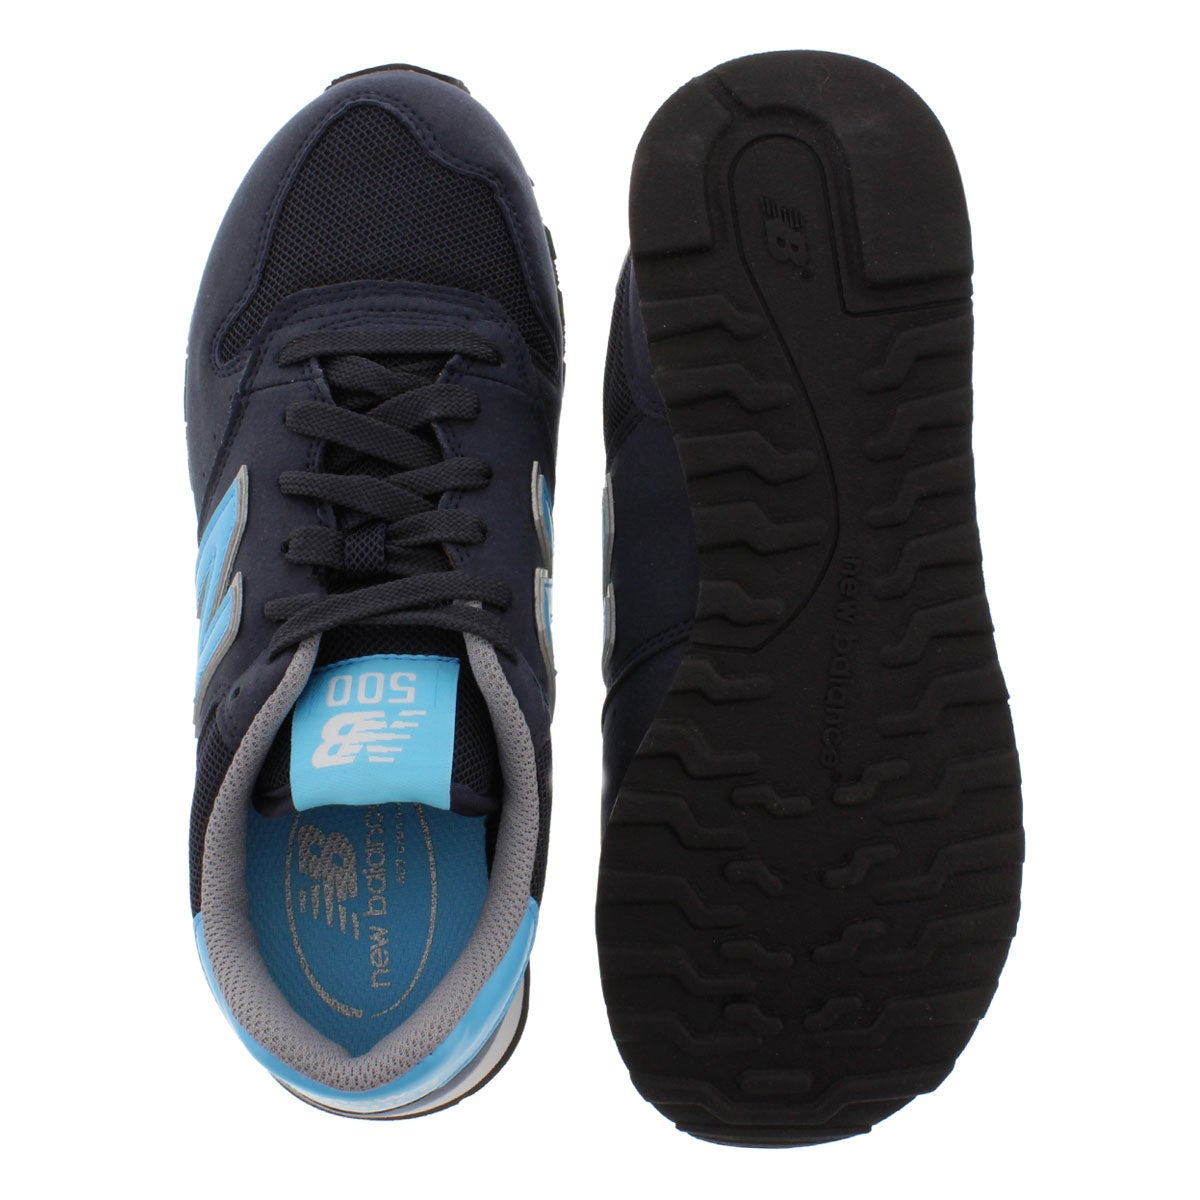 Lds 500 navy/mlti suede lace up sneaker